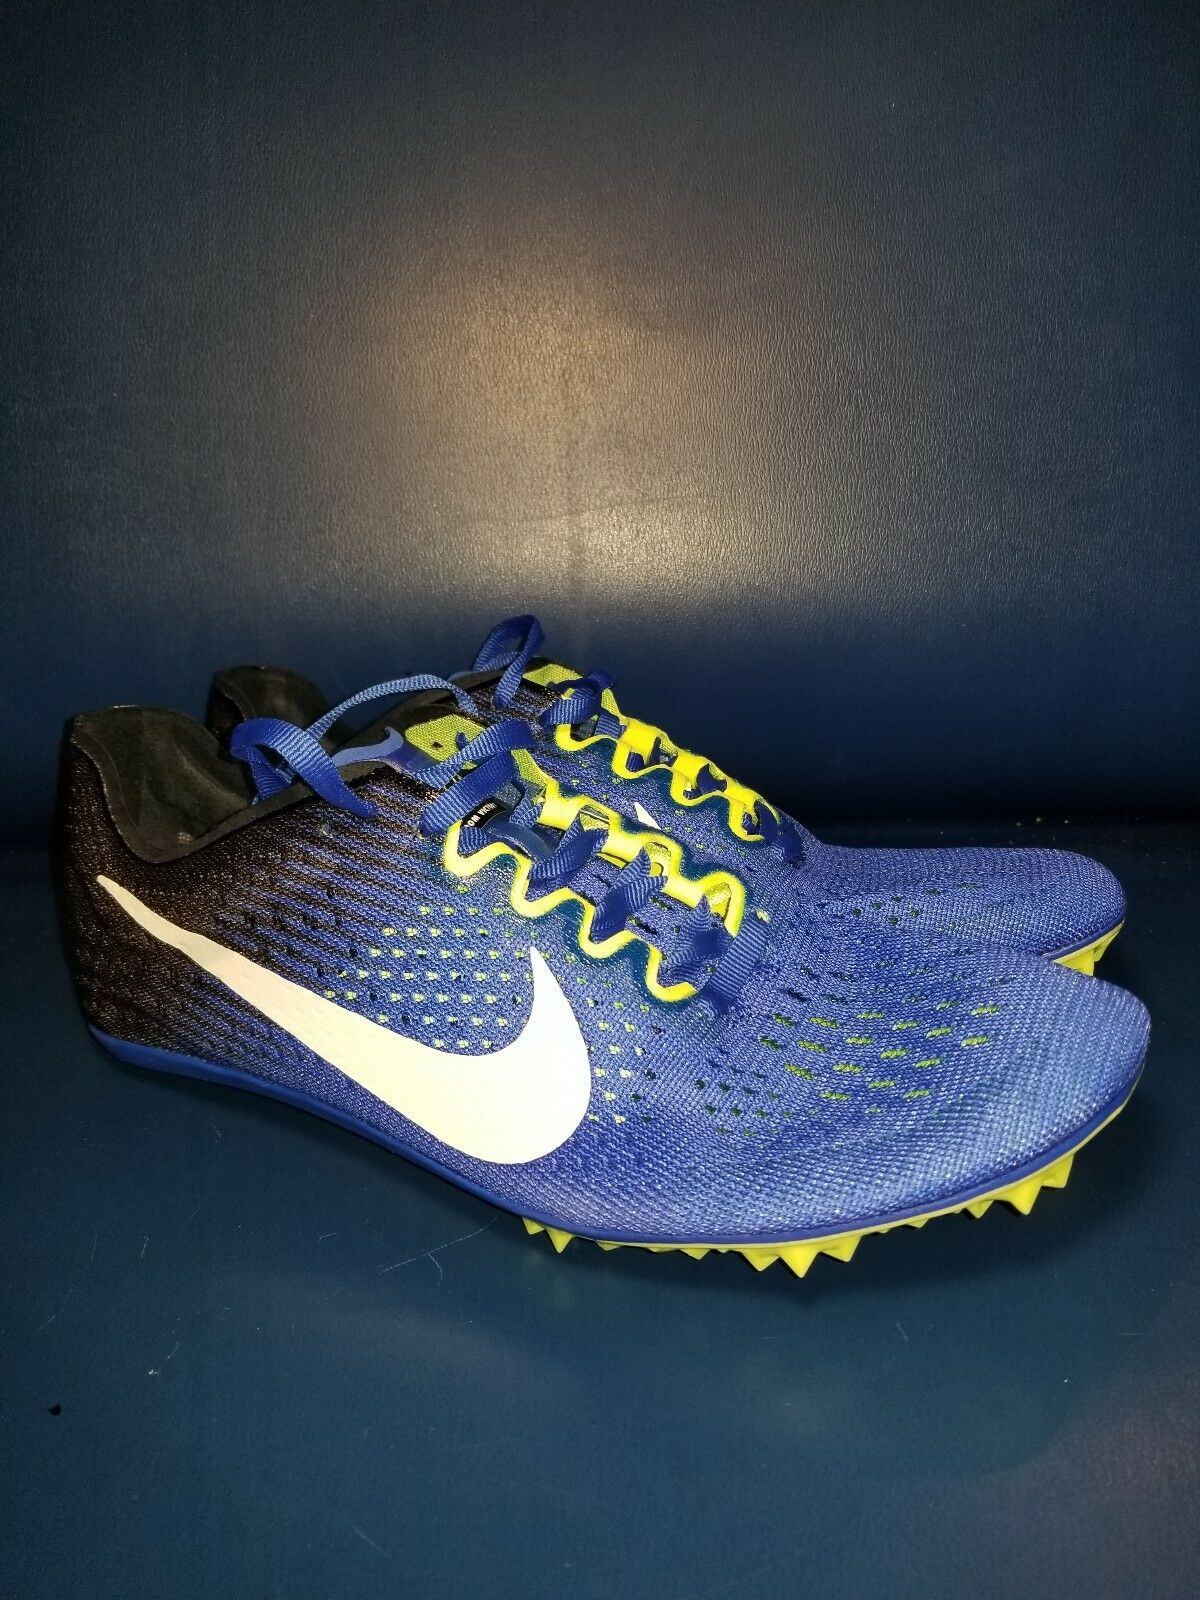 Nike Zoom Victory 3 Track Running Spikes bluee Volt White Black SZ 7.5 835997-413